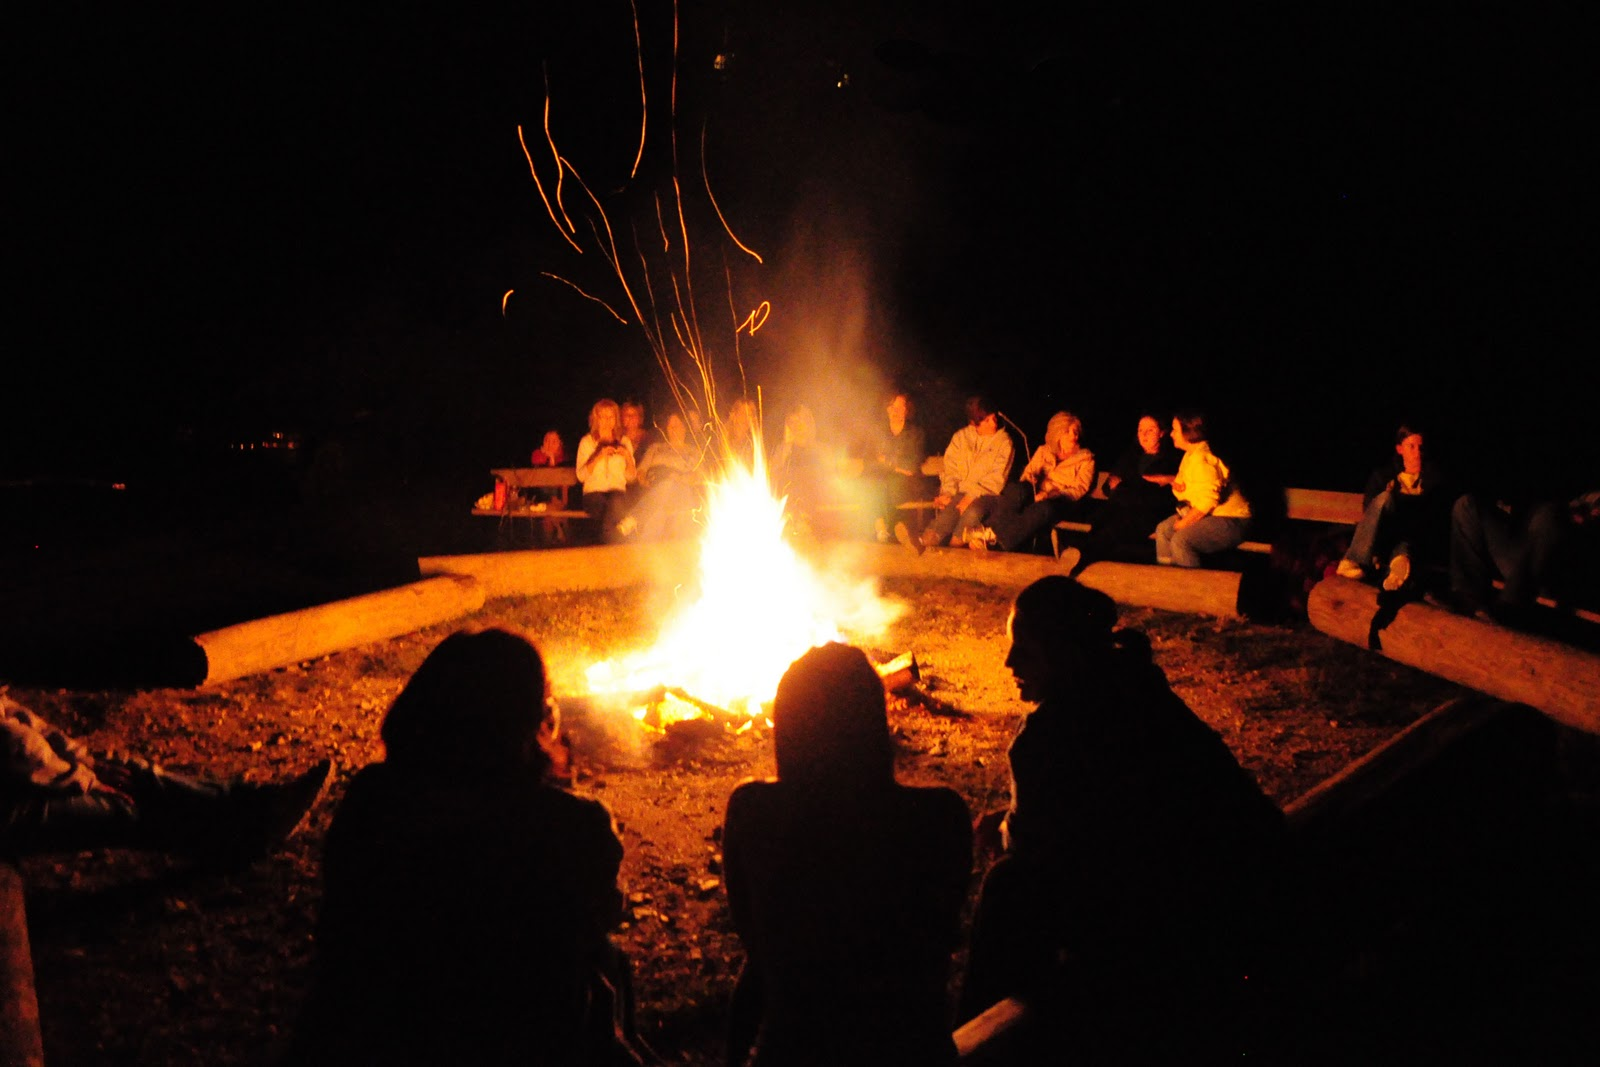 People sitting around a bonfire.